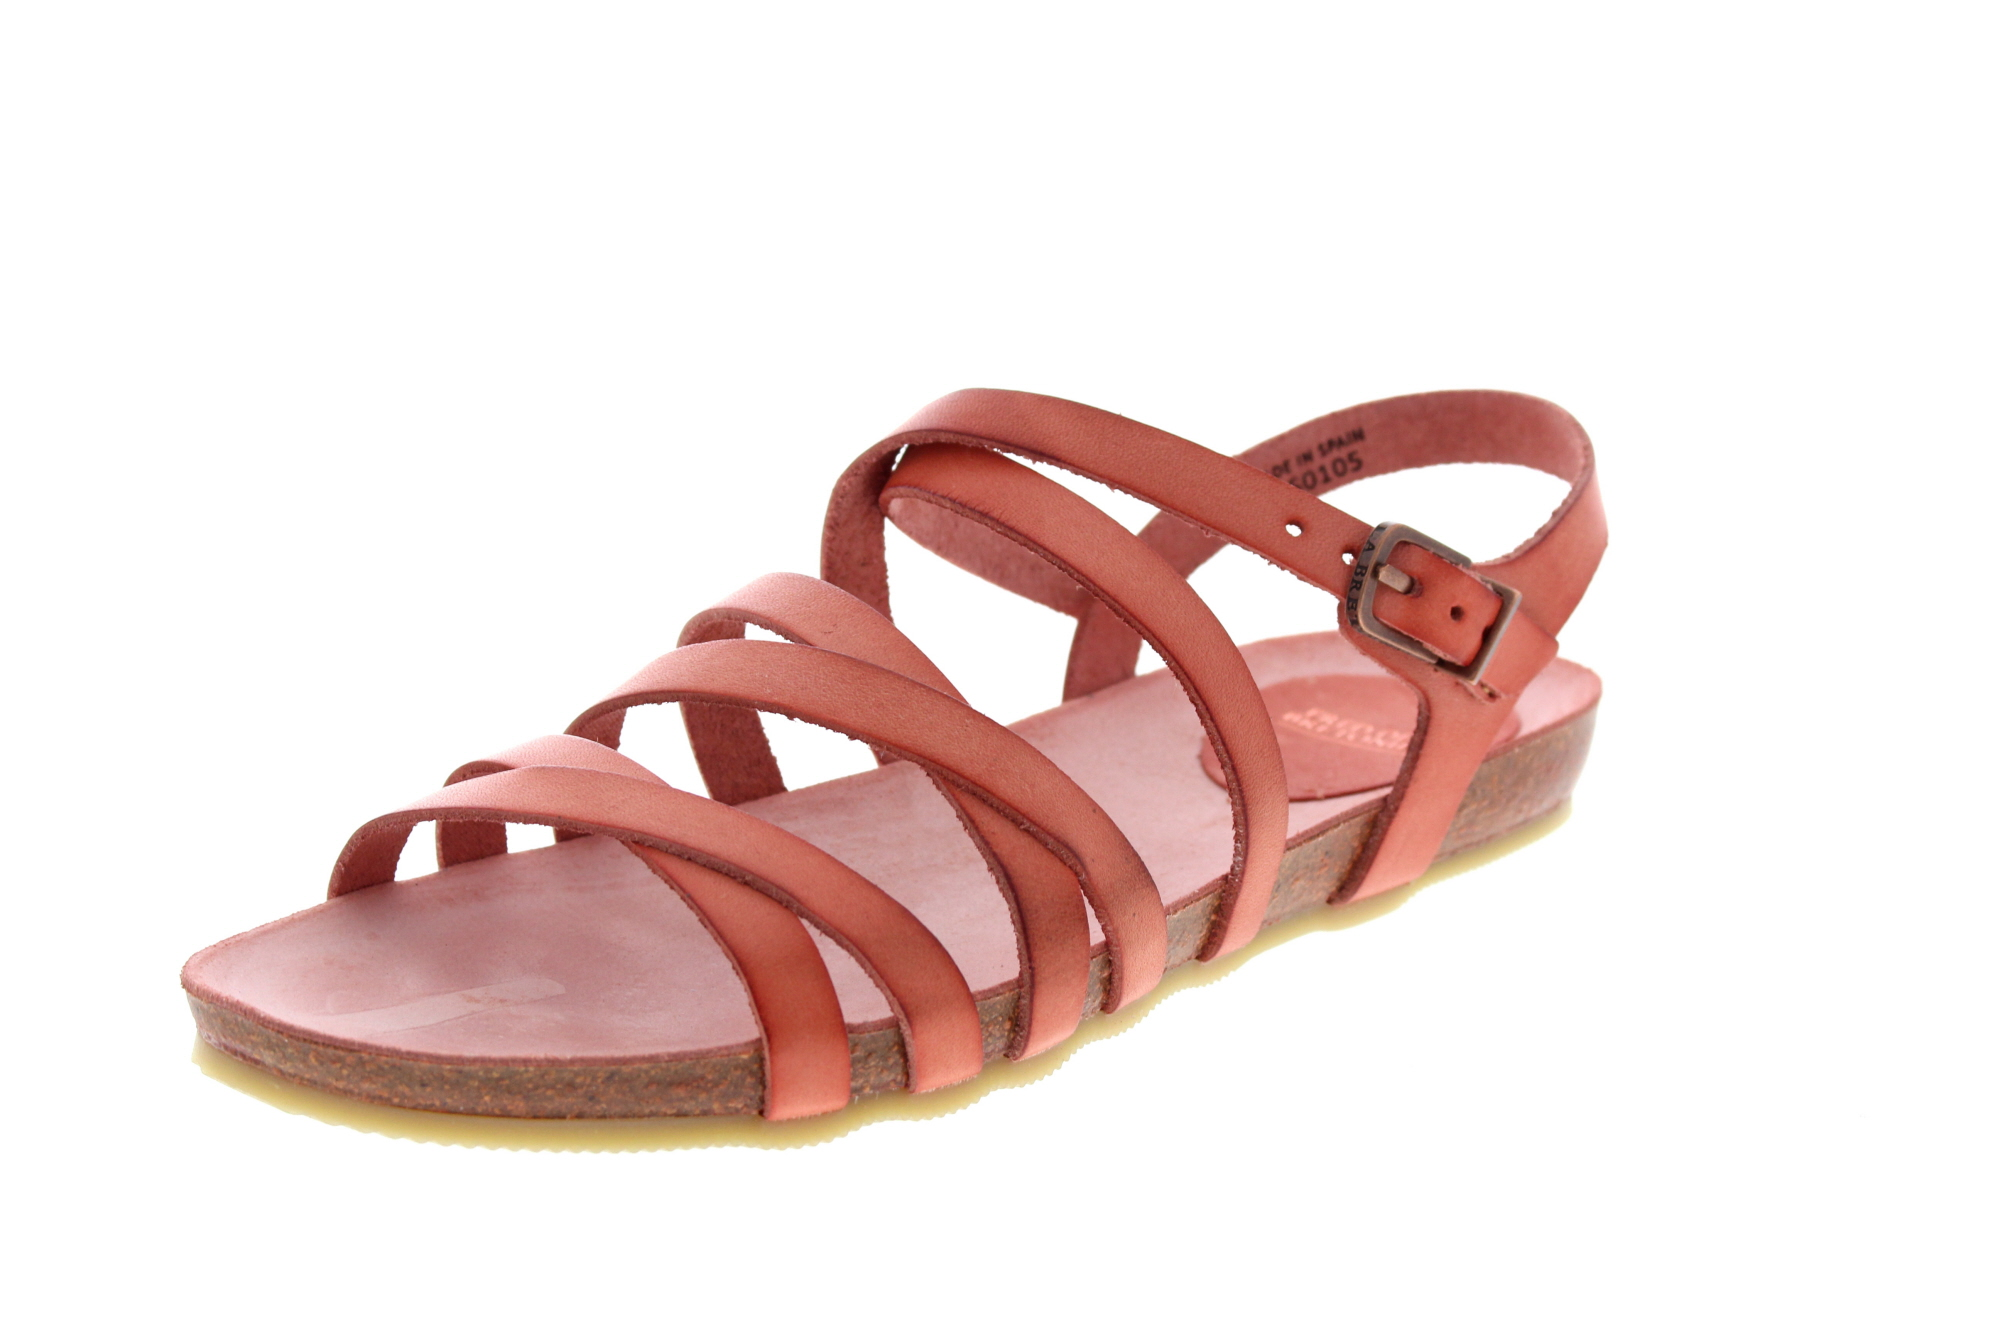 FRED DE LA BRETONIERE - Sandalen 170010028 - soft red_0